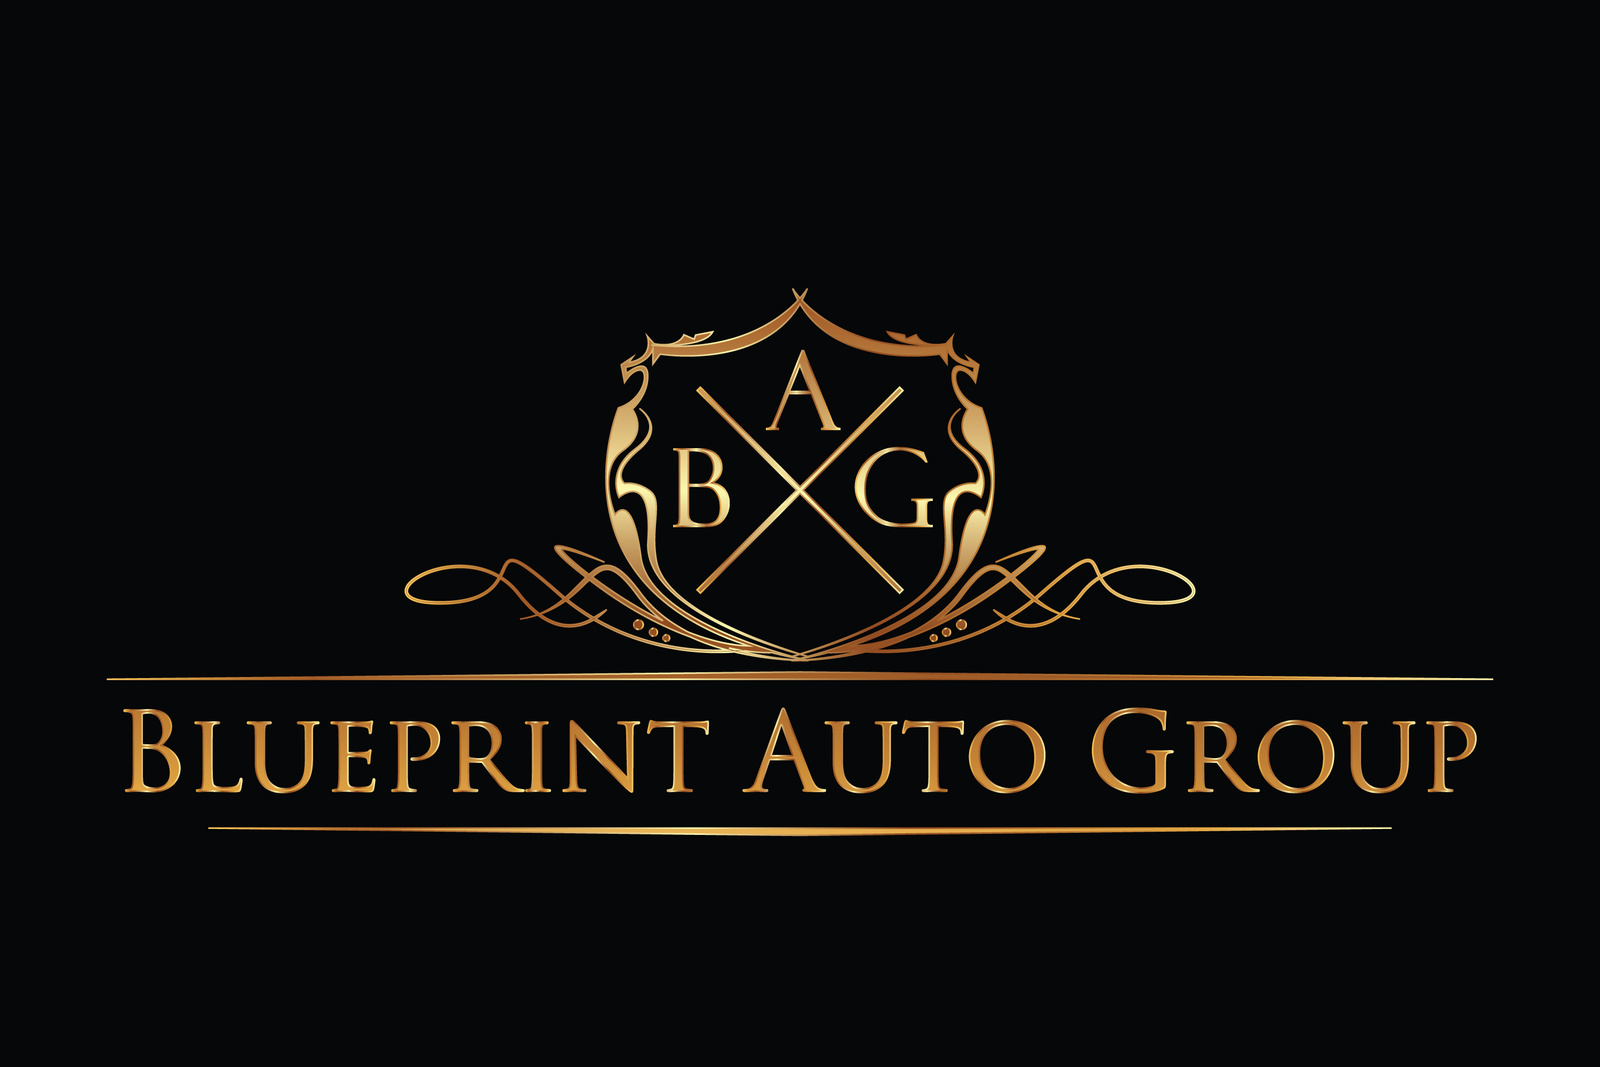 Blueprint Auto Group - Corona, CA: Read Consumer reviews, Browse ...